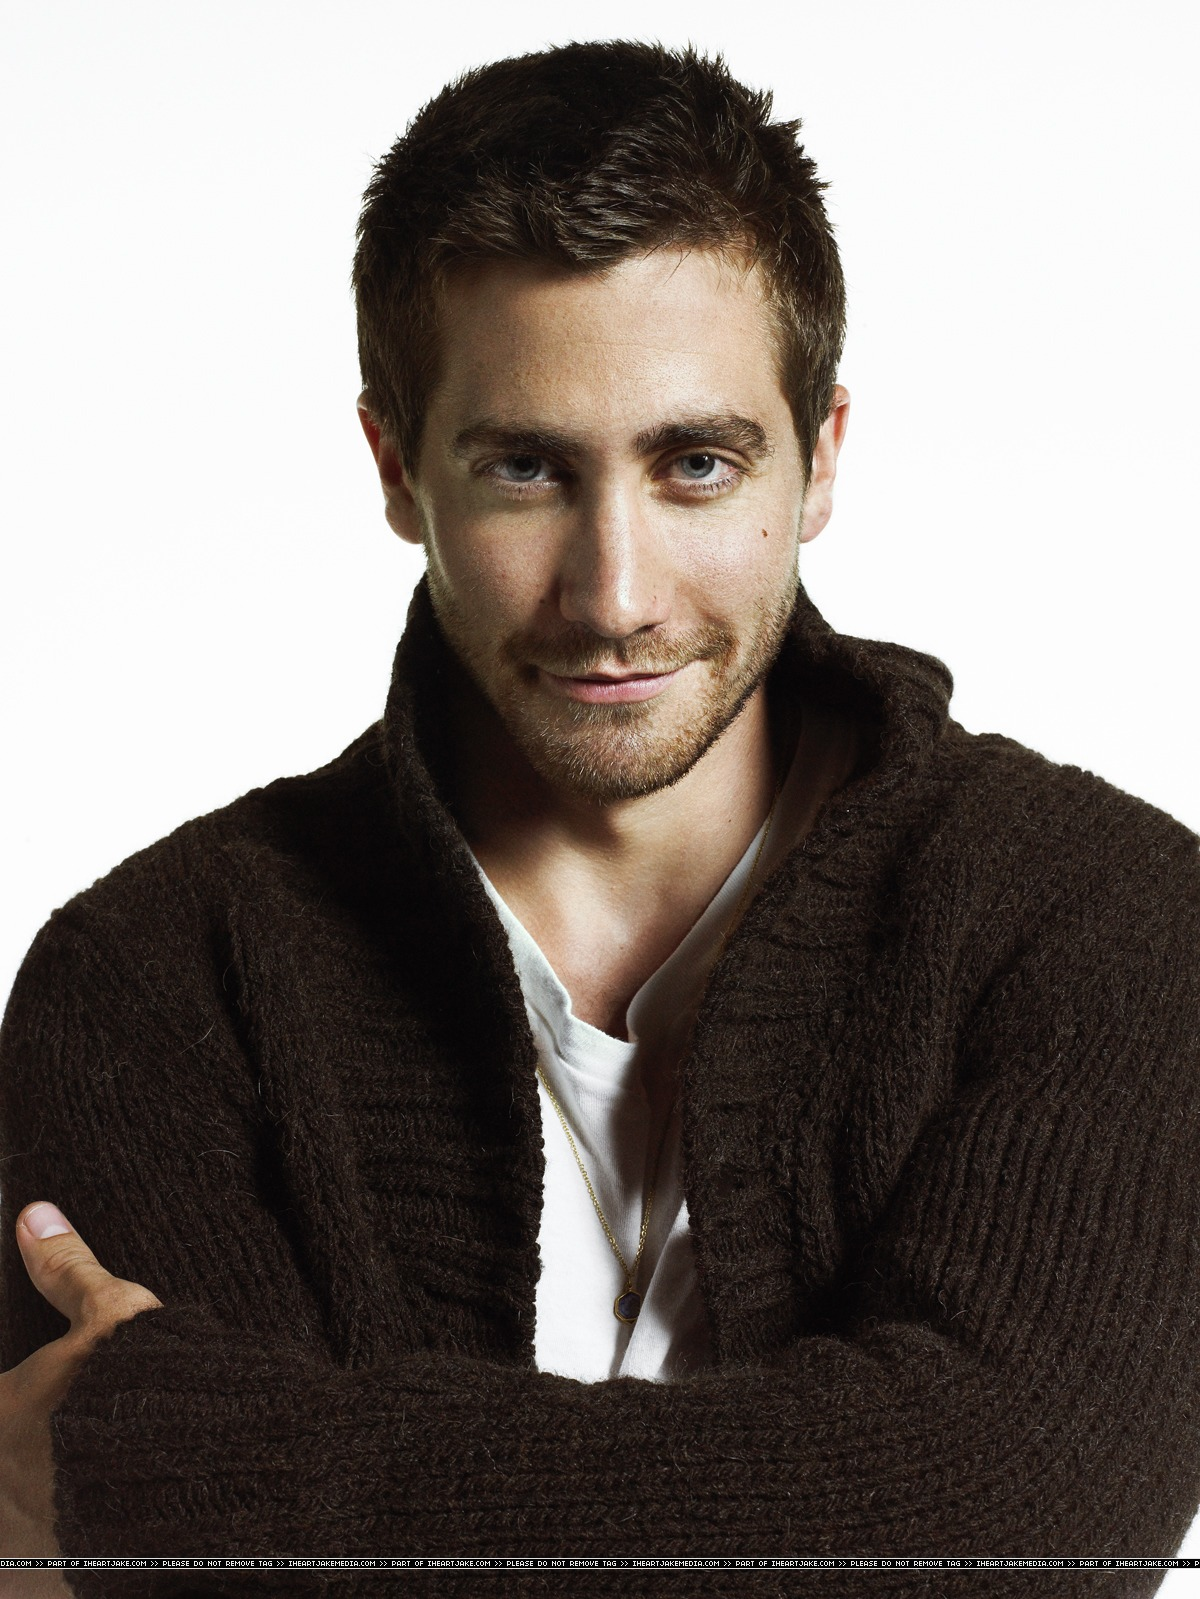 Jake Gyllenhaal photo #205436